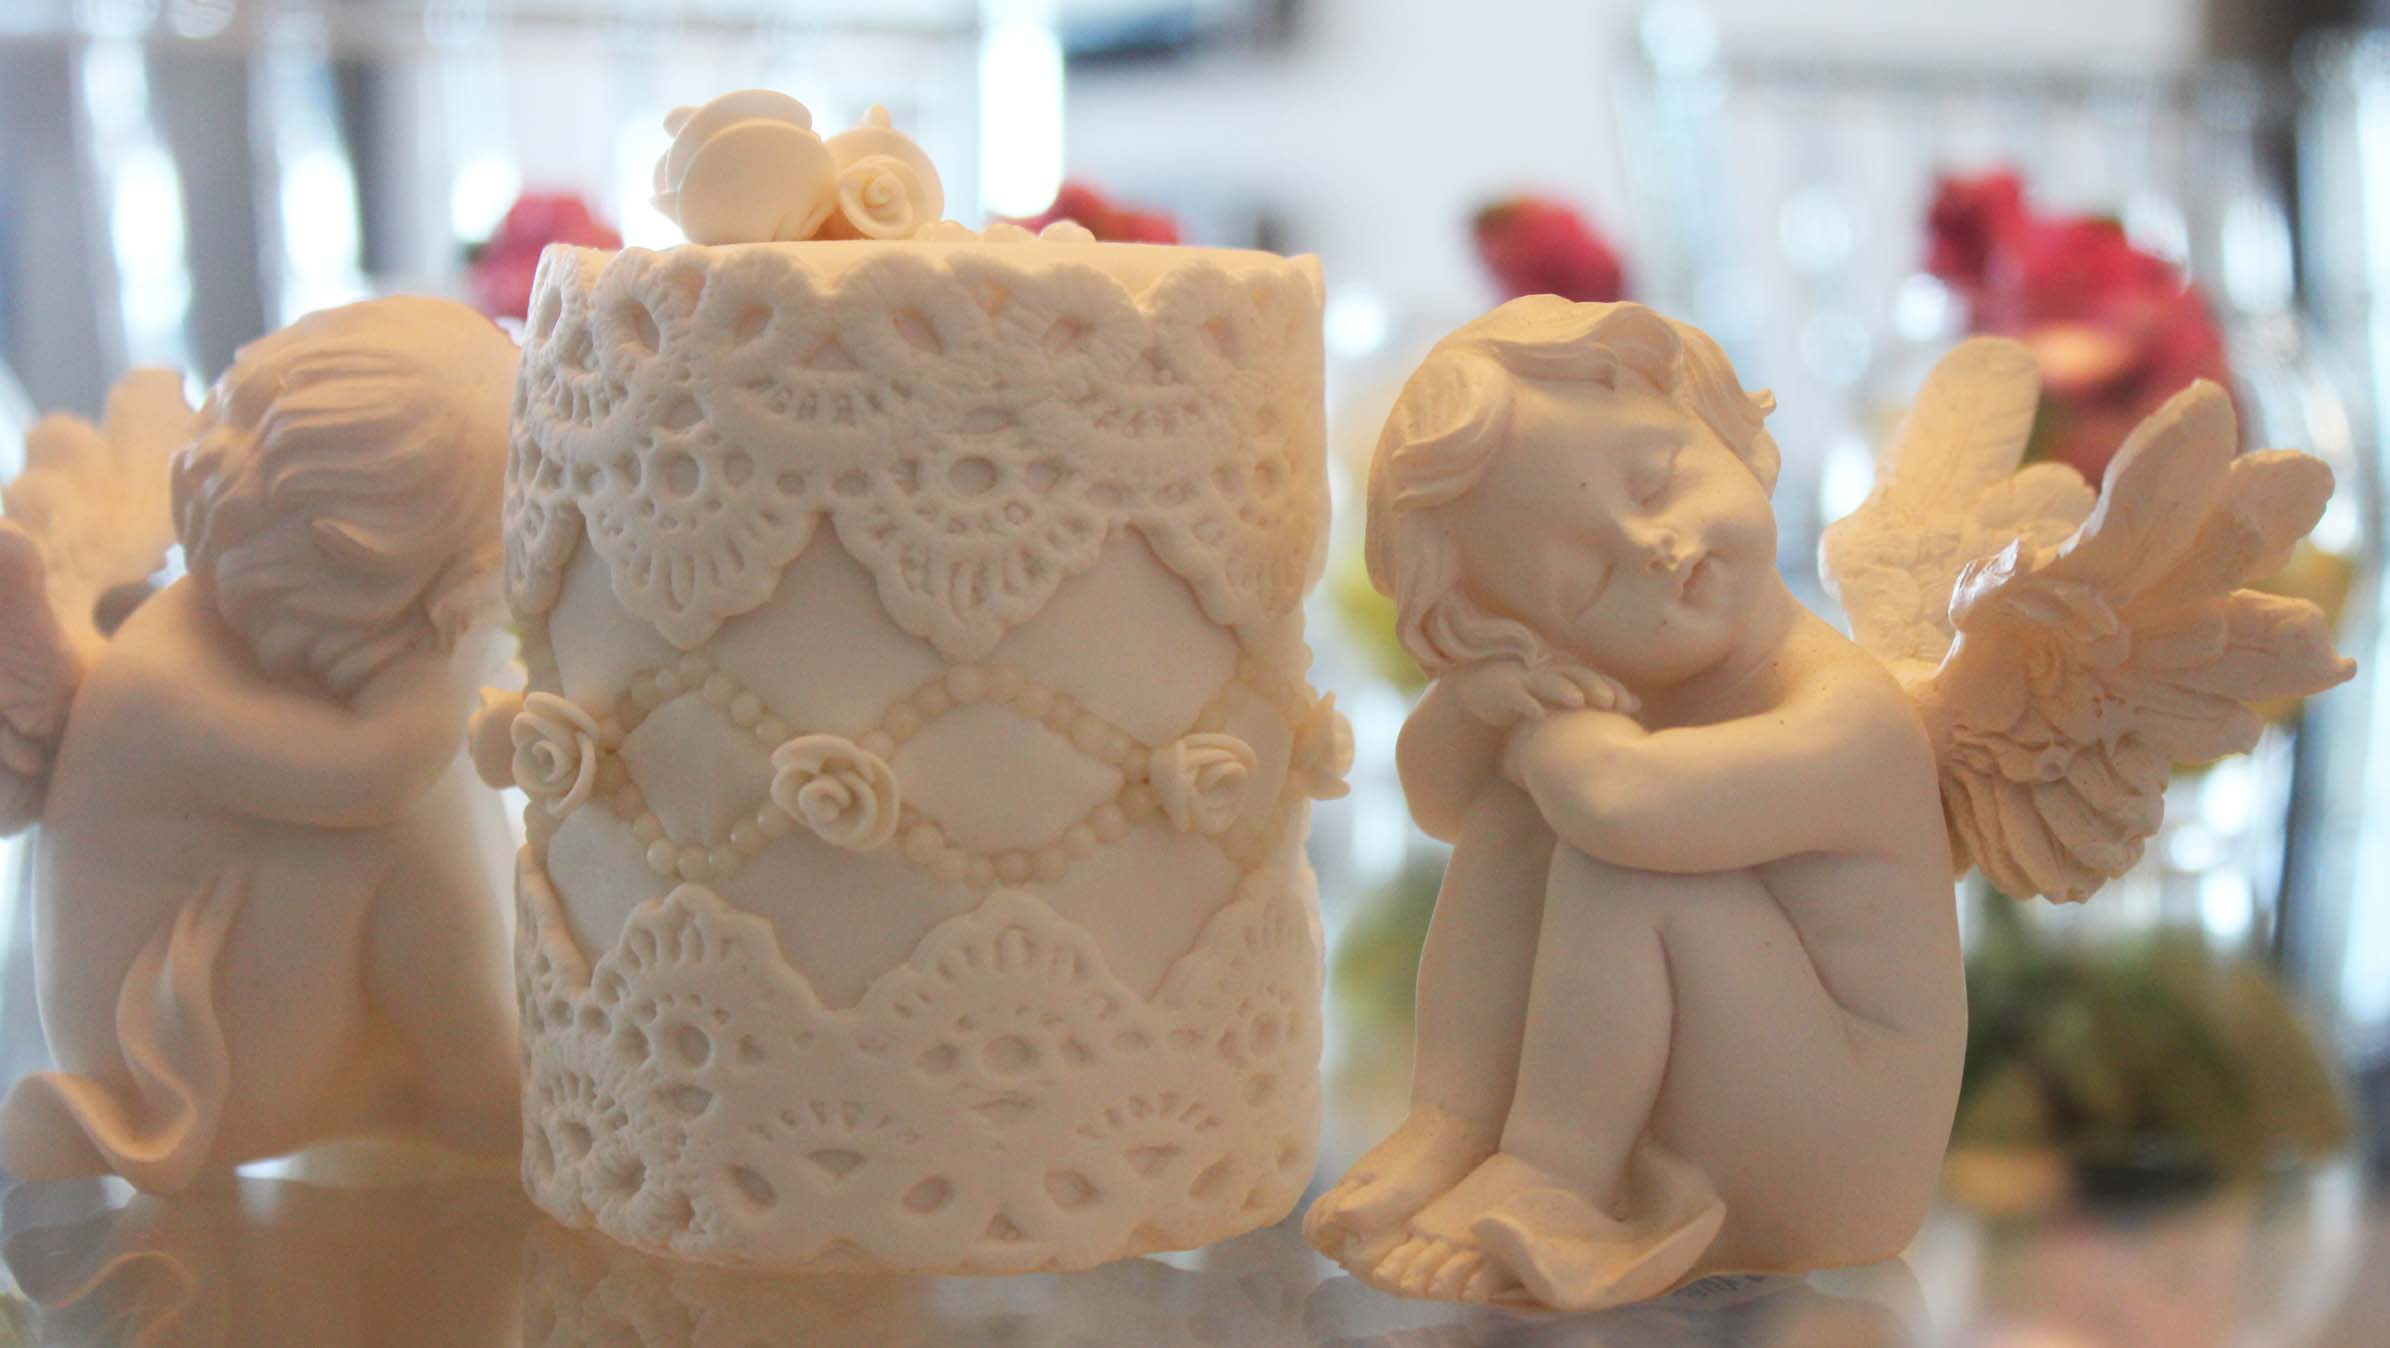 Mini white lace cake with angel figurines